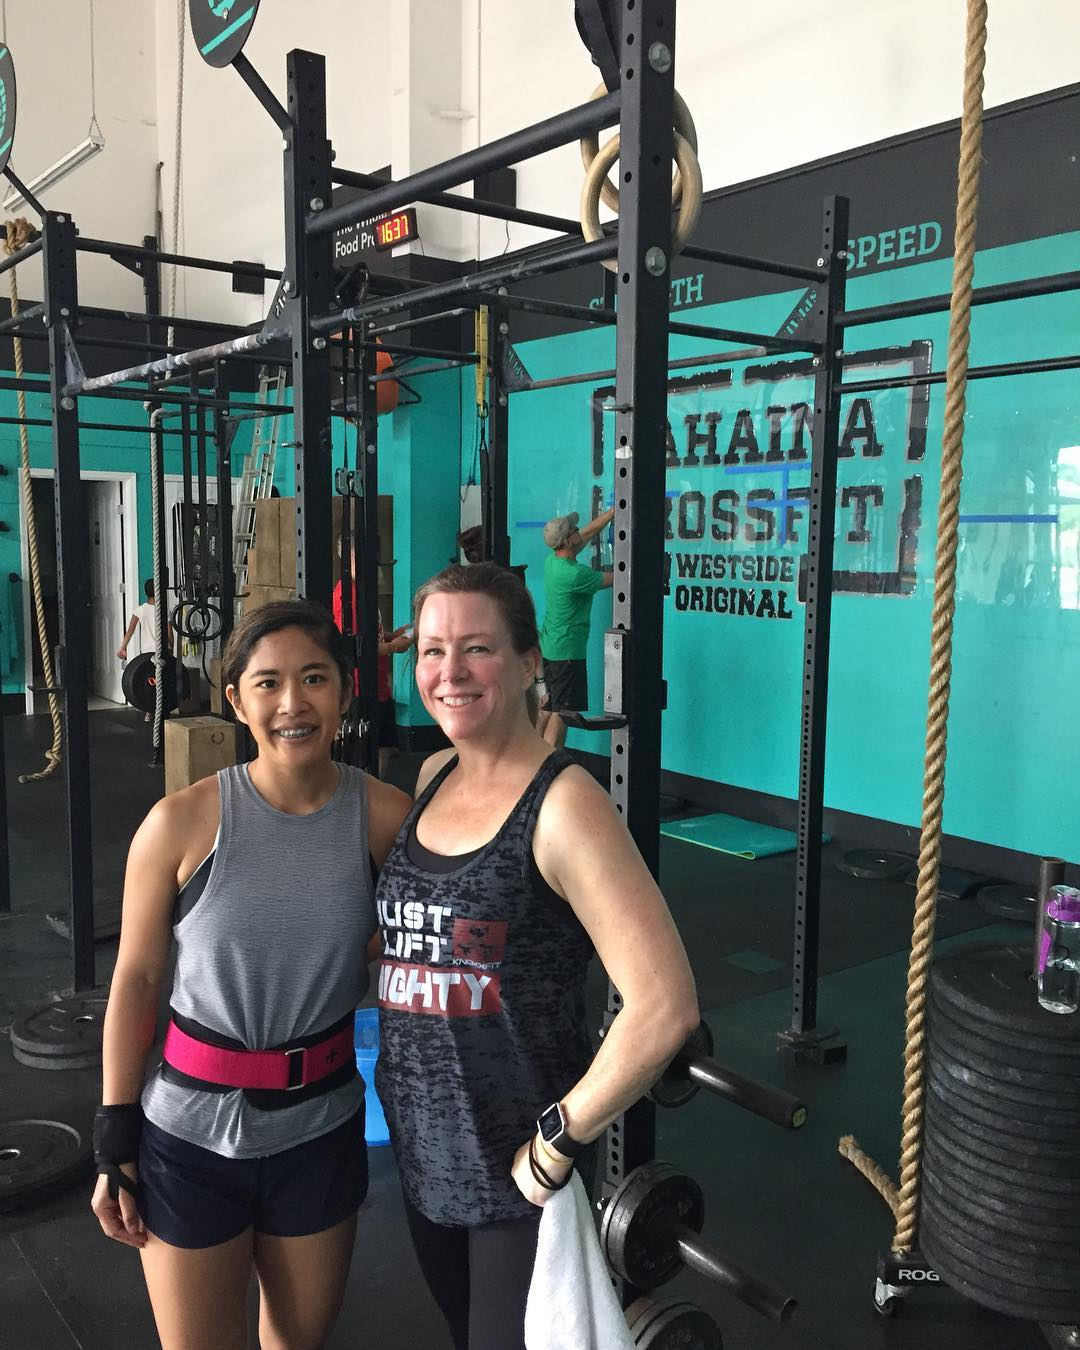 Denean and Leslie got 18.4 down while on vacation!